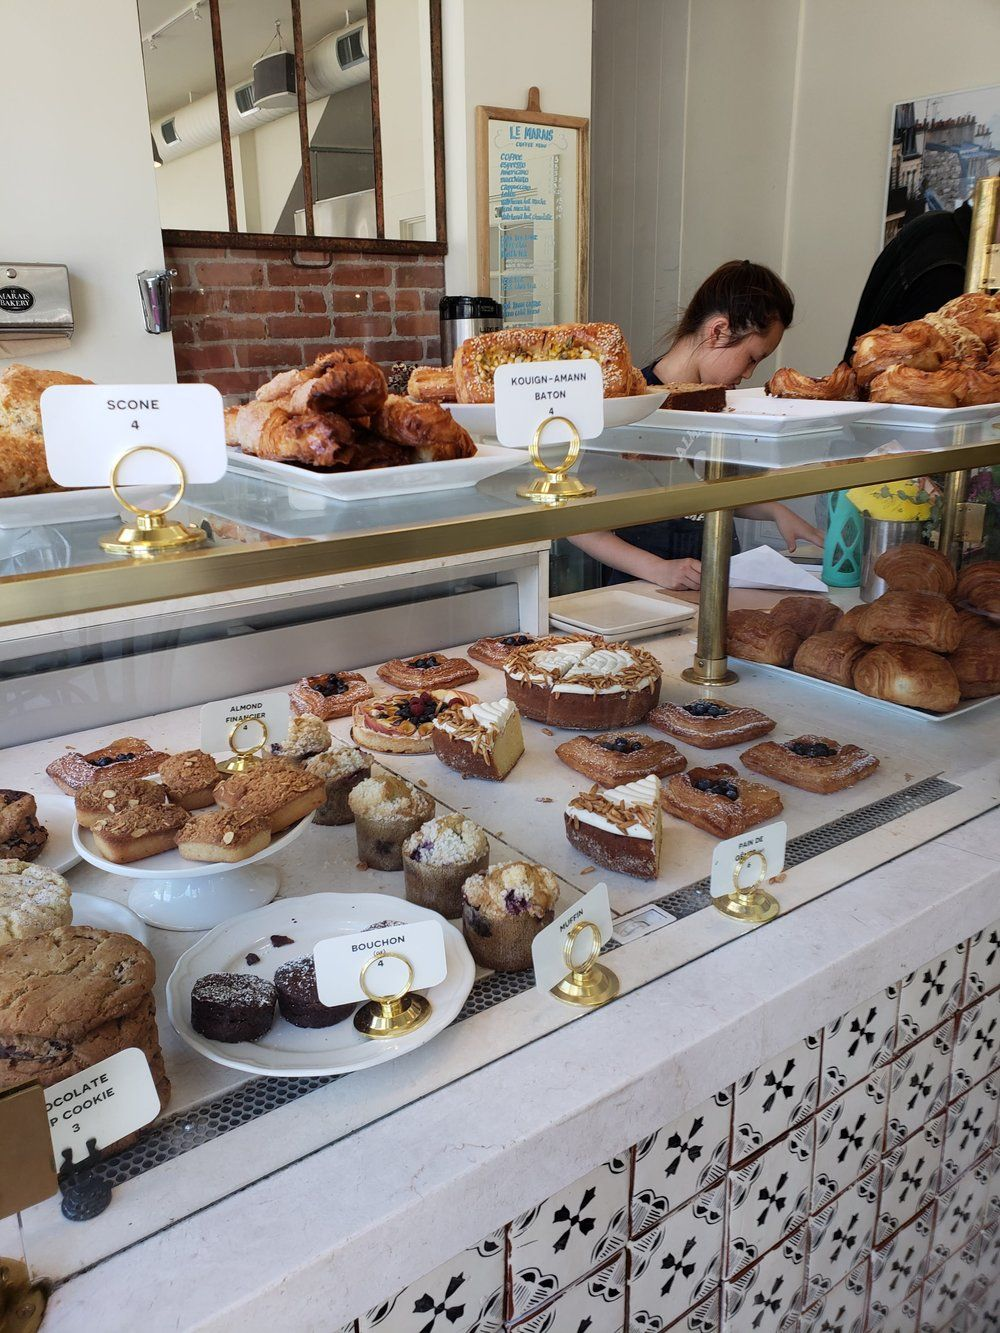 28+ Best bakeries in san francisco that deliver ideas in 2021